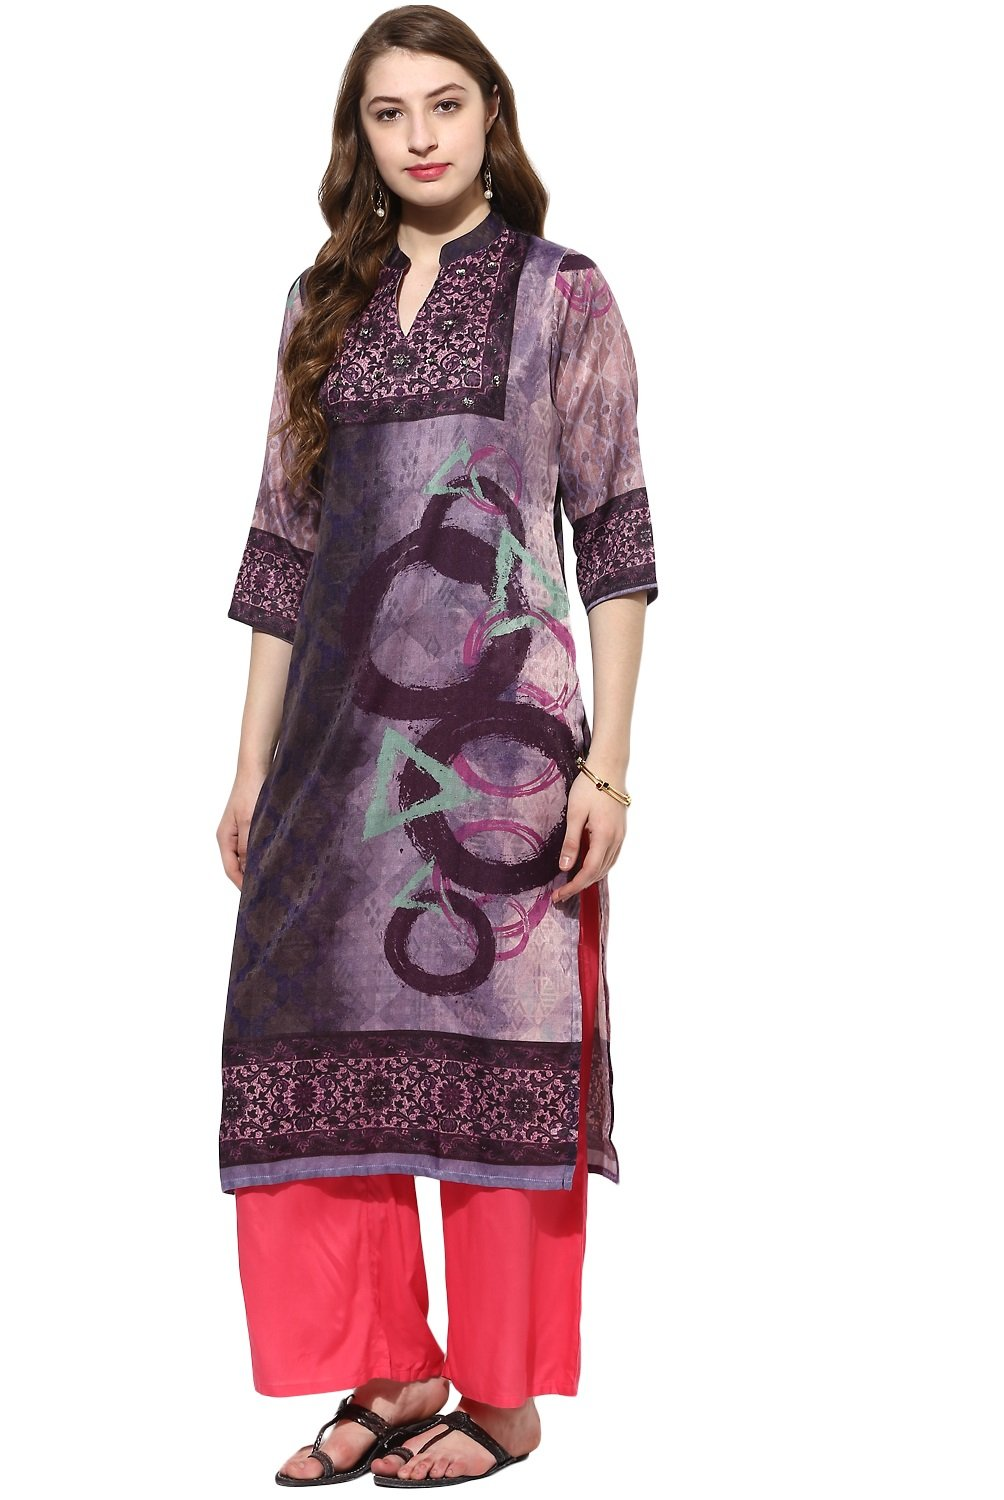 Lagi Kurtis Ethnic Women Kurta Kurti Tunic Digital Print Top Dress Casual Wear New Launch by Purple